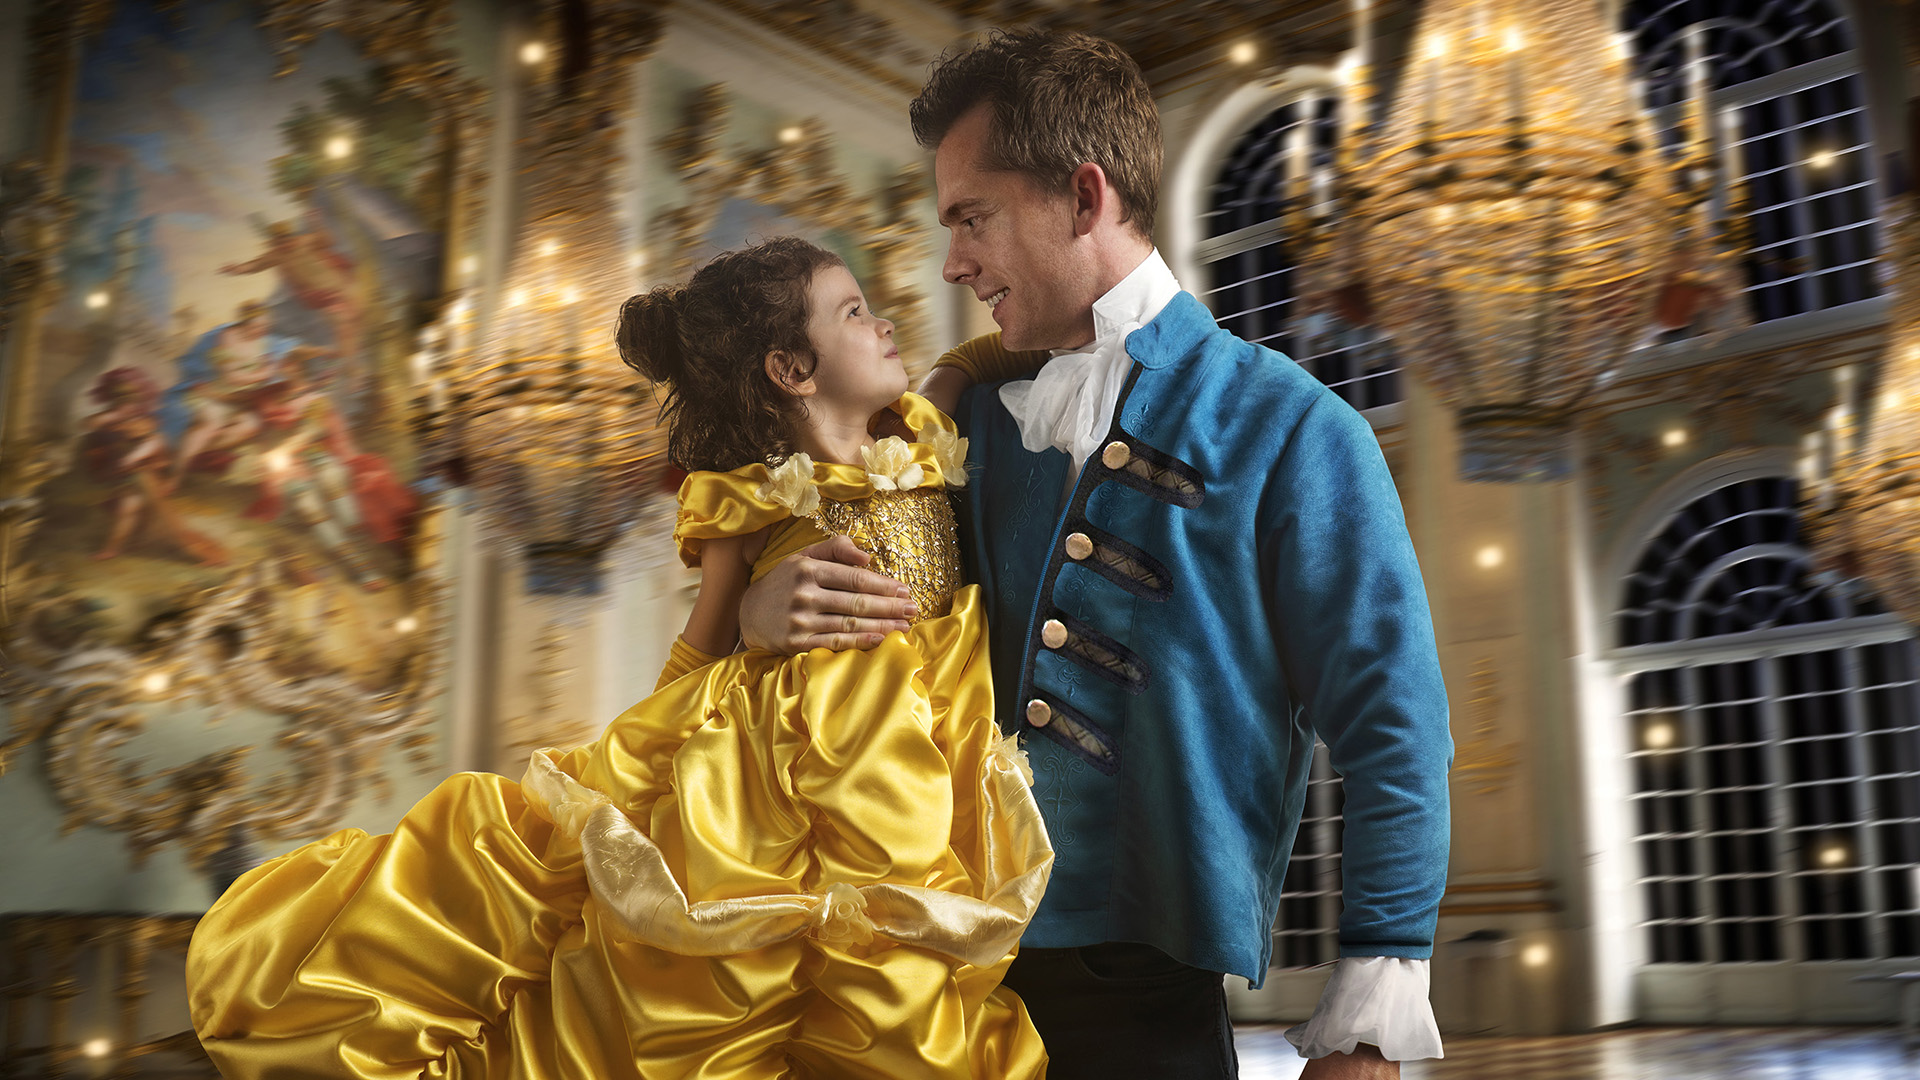 Dad Stages Epic Beauty And The Beast Shoot For Daughter